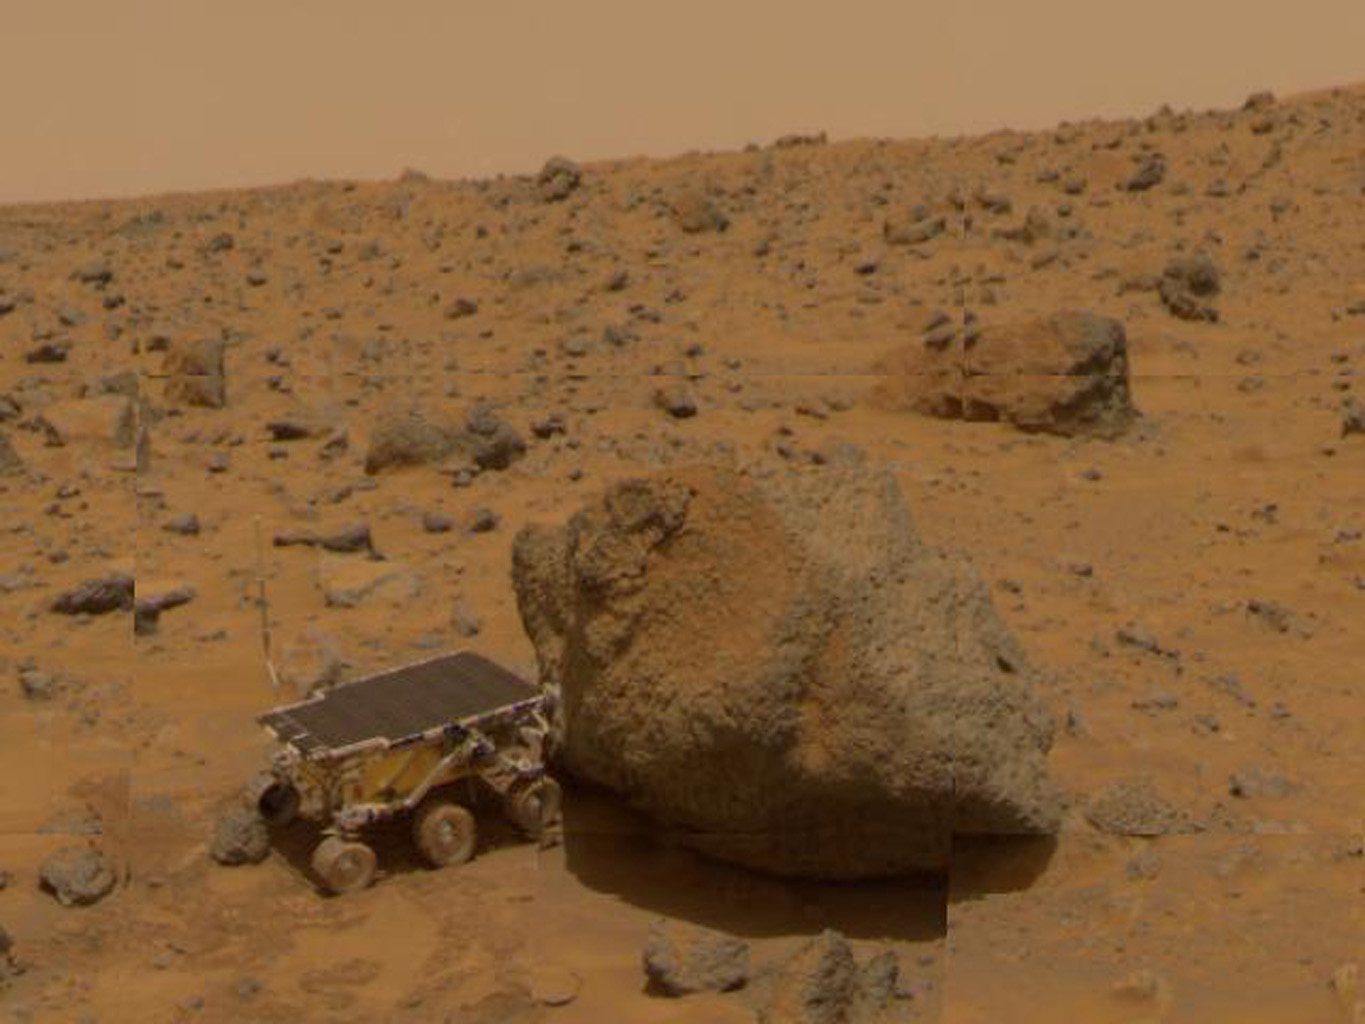 This 1997 image from NASA's Mars Pathfinder shows a close up of Sojourner as it placed its Alpha Proton X-Ray Spectrometer (APXS) upon the surface of the rock 'Yogi.'